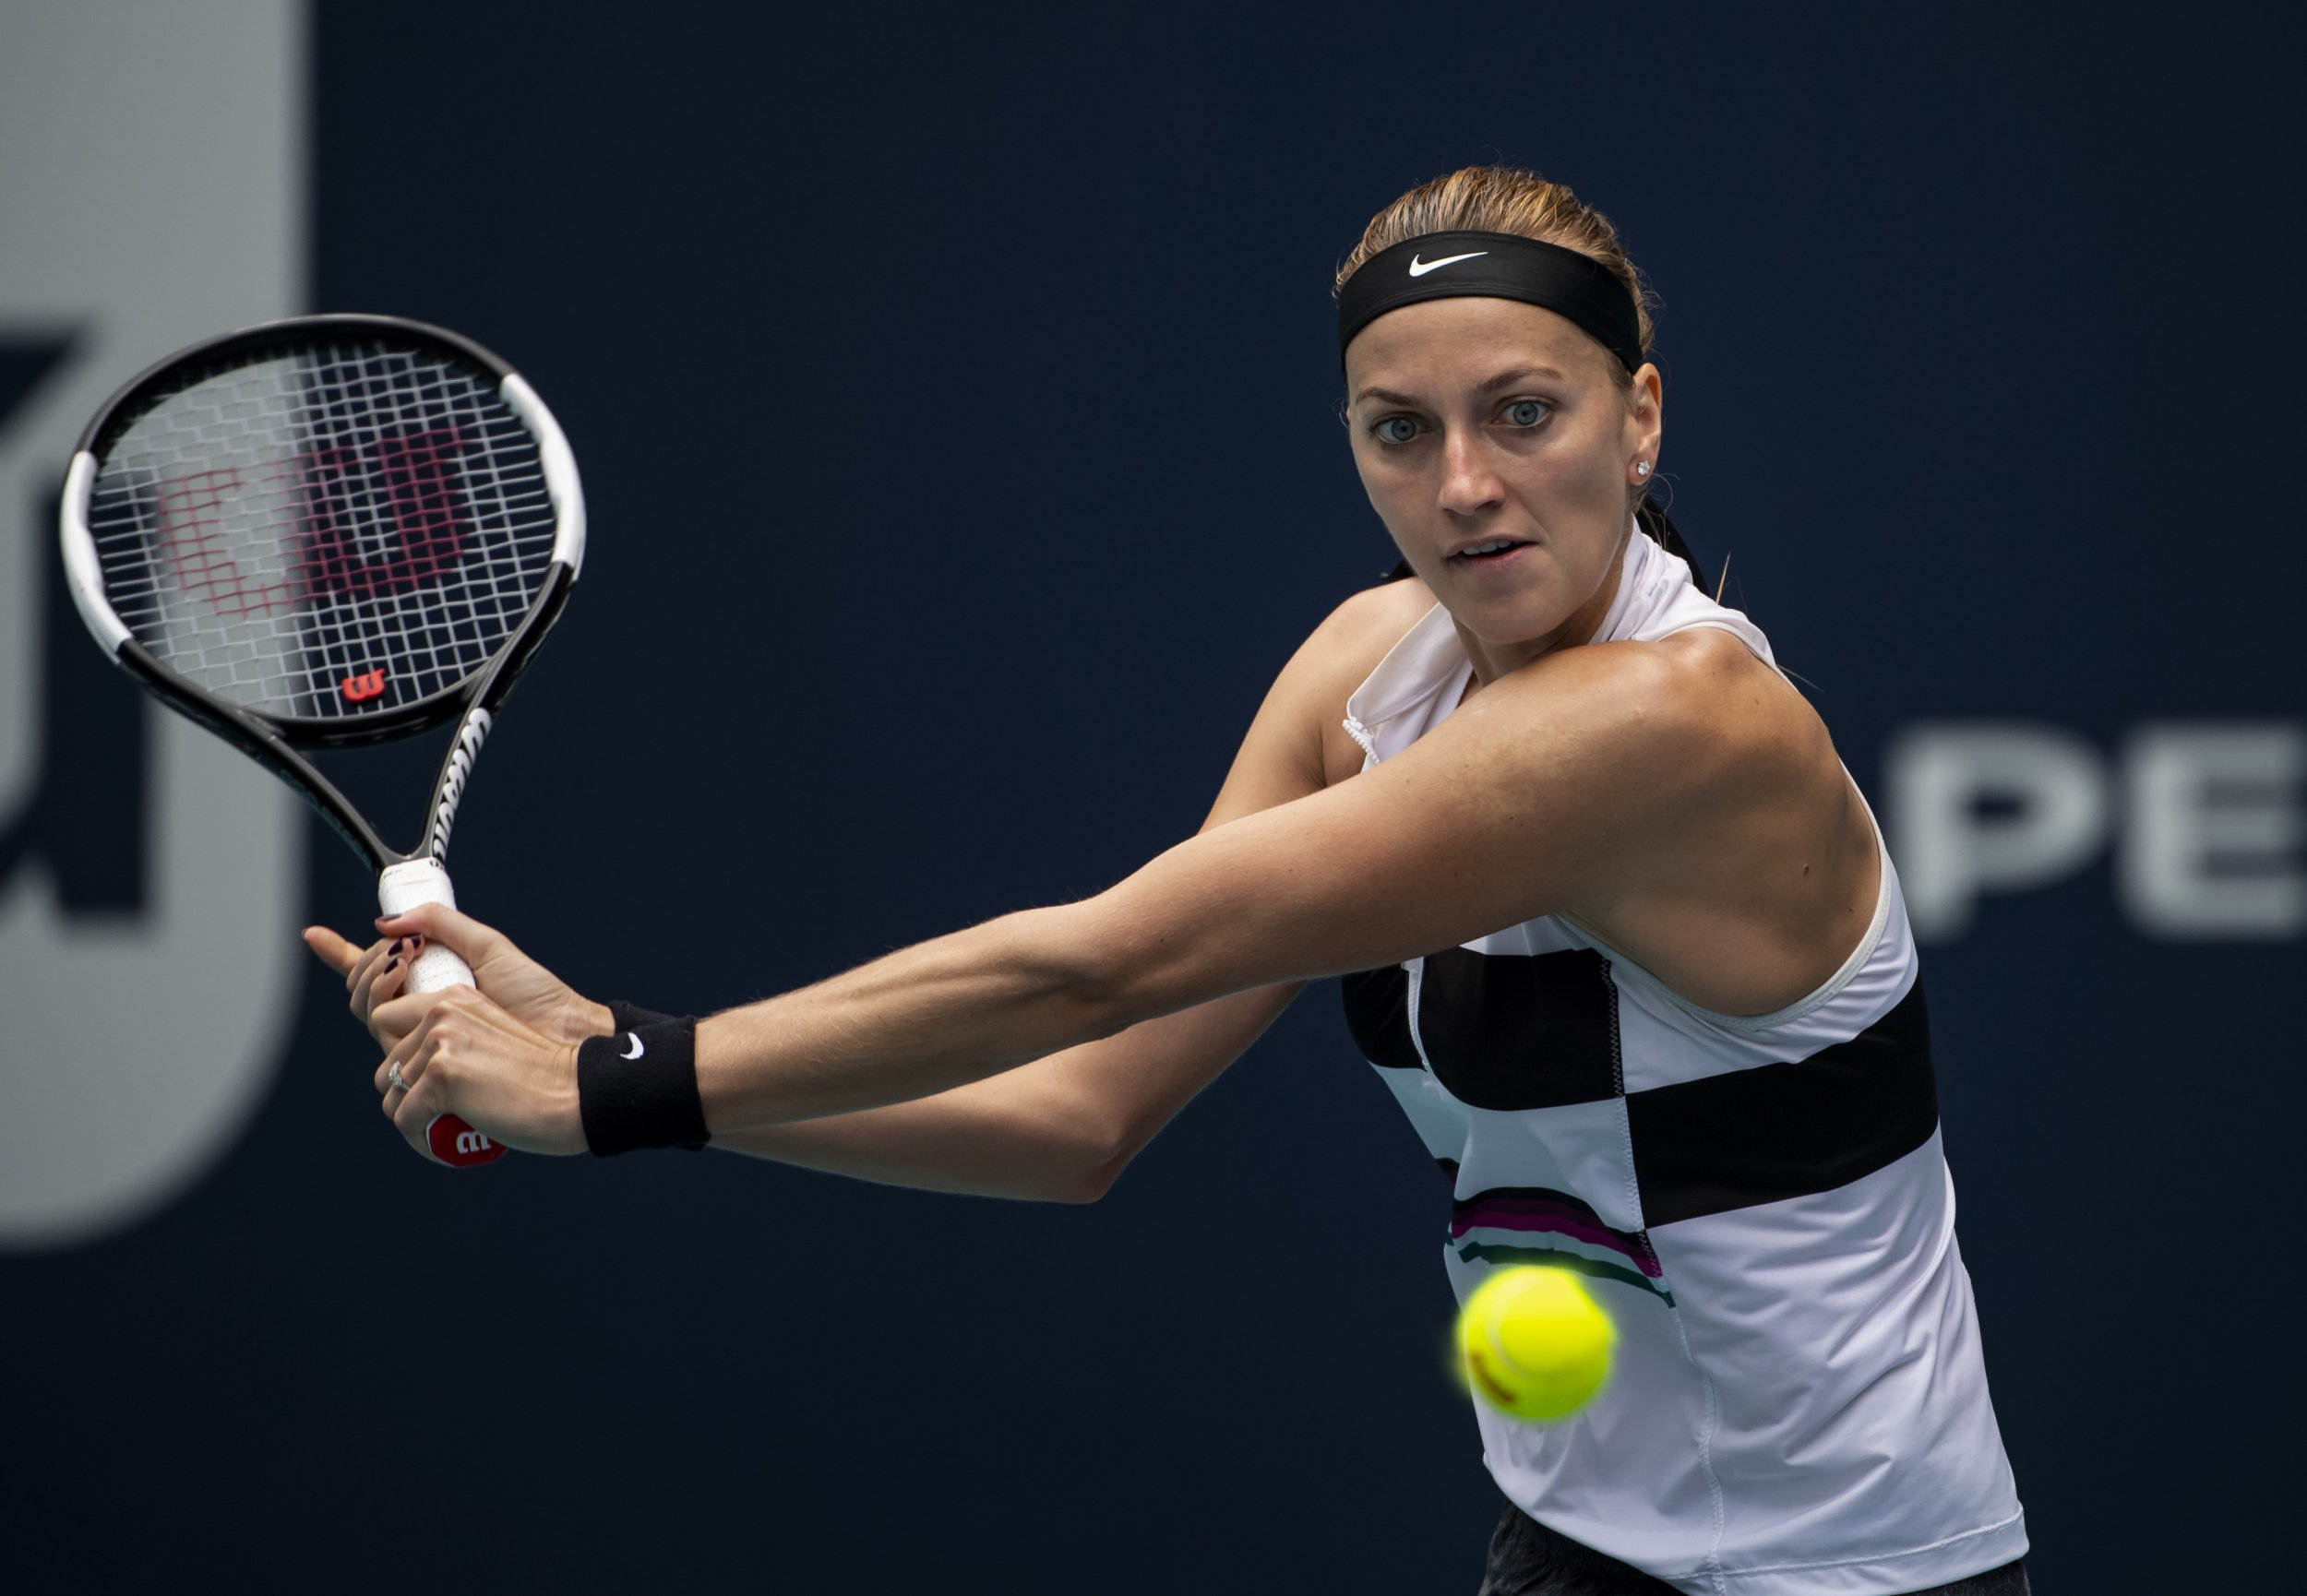 MIAMI GARDENS, FLORIDA - MARCH 25: Petra Kvitova of the Czech Republic hits a backhand against Caroline Garcia of France in the 4th Round of the women's singles at the Miami Open on March 25, 2019 in Miami Gardens, Florida. (Photo by TPN/Getty Images)